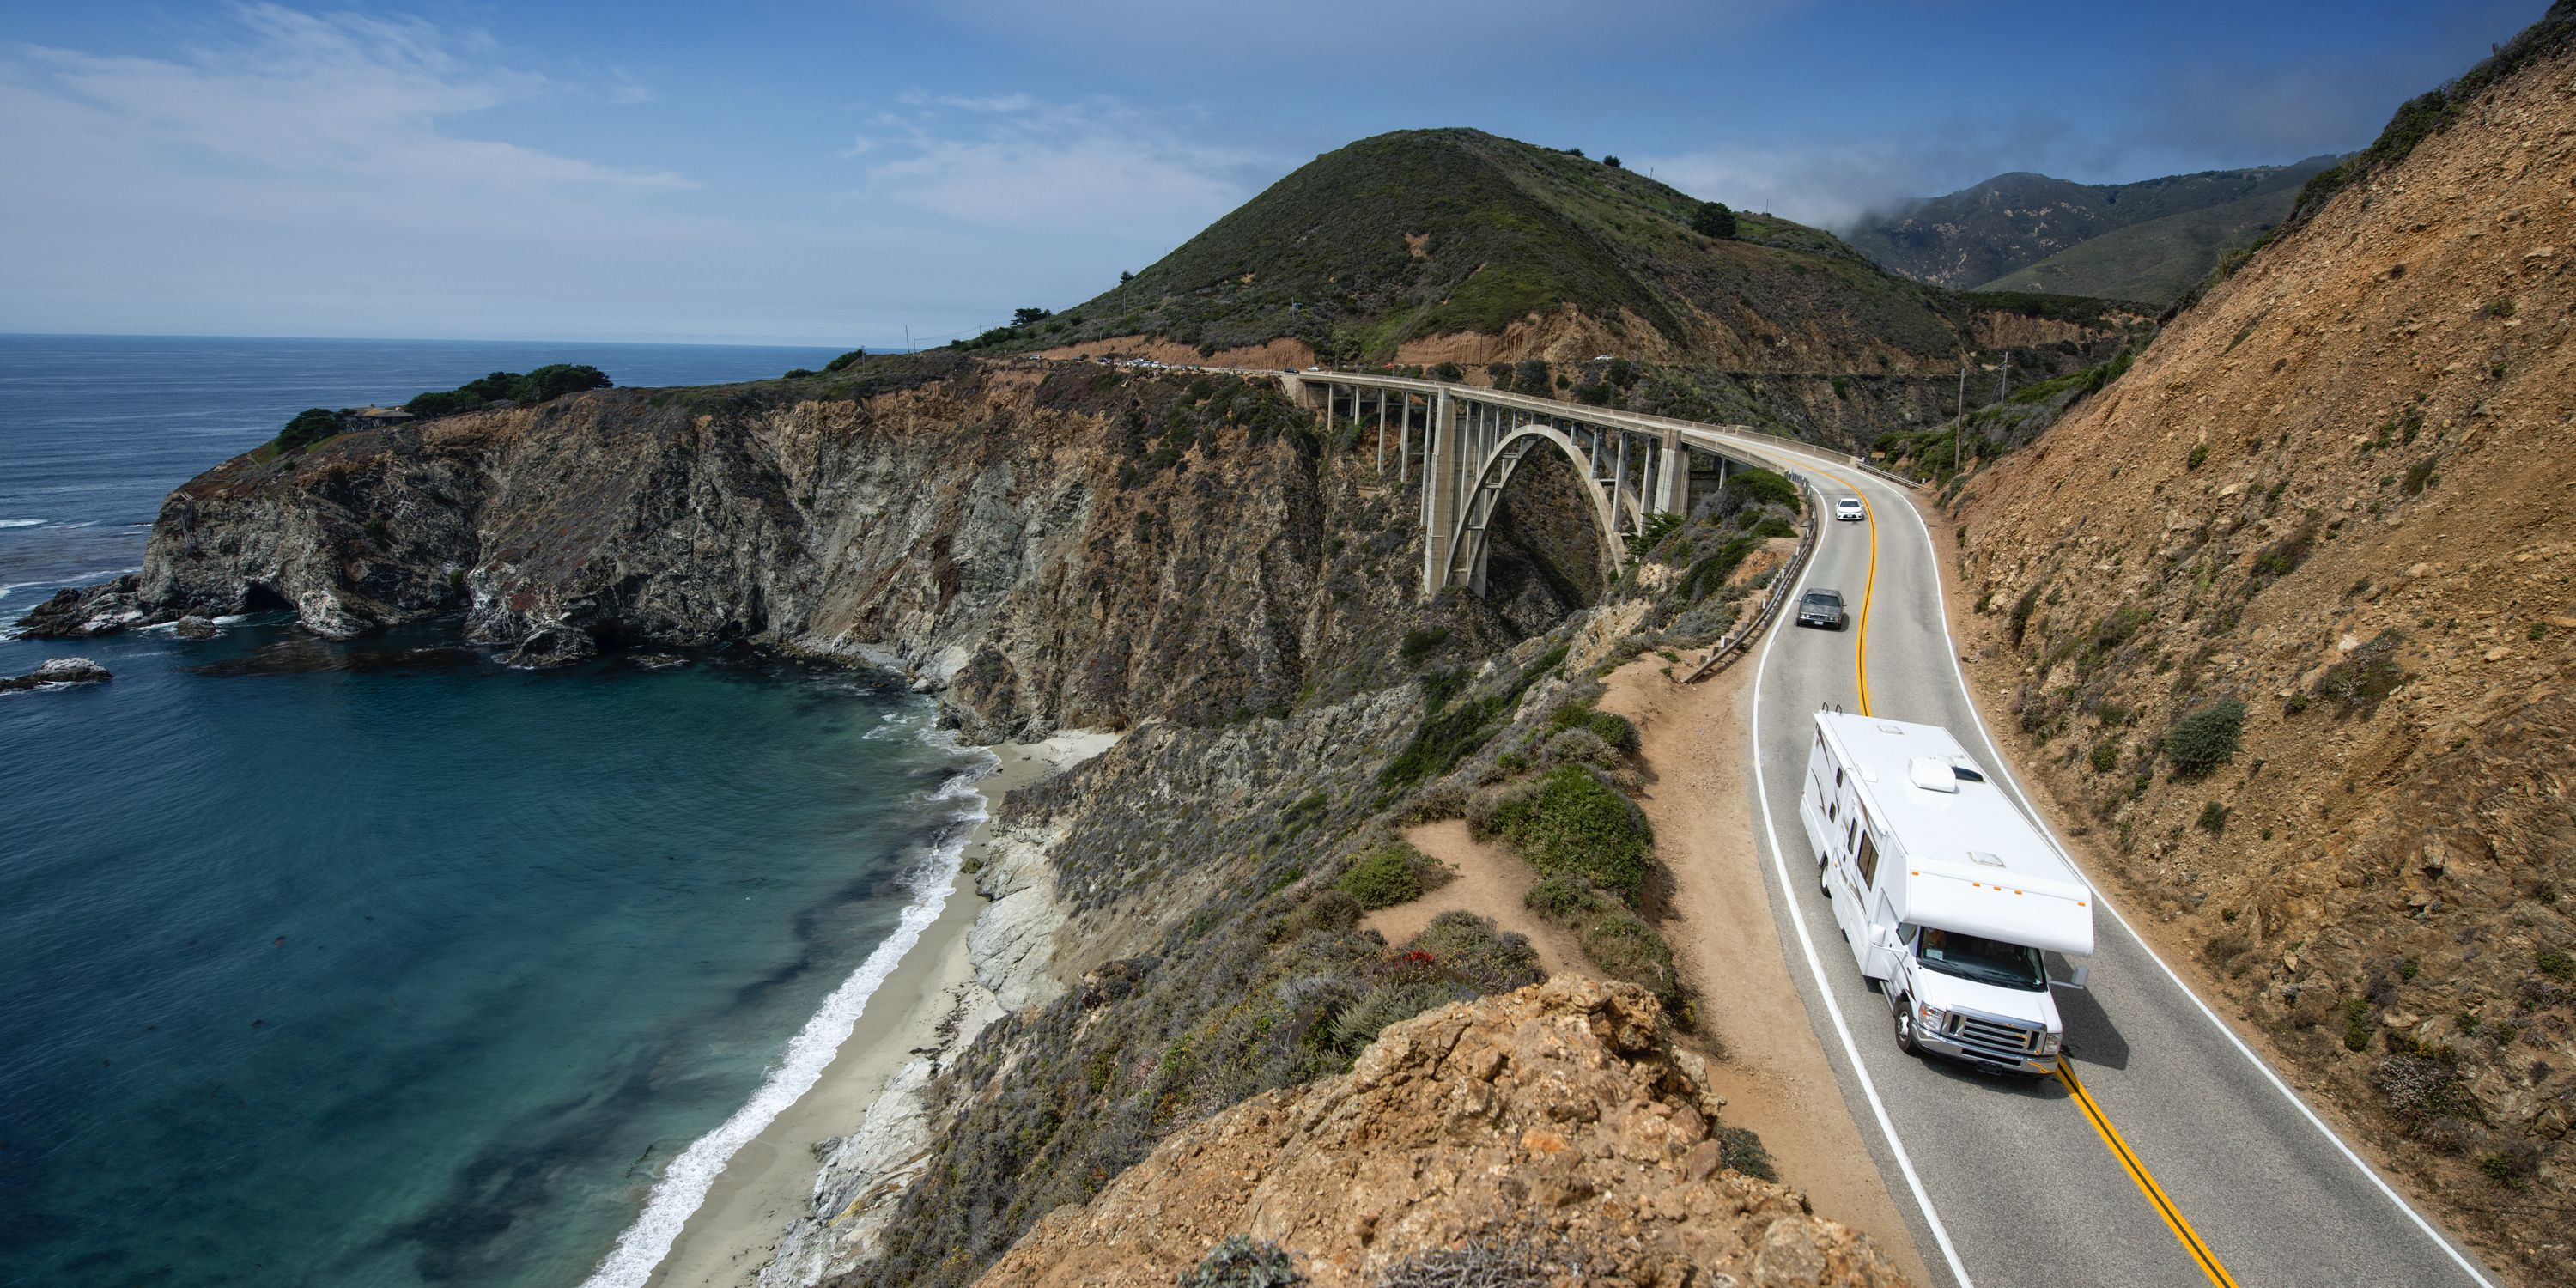 California's Route 1 extends almost the entire length of the Golden State, but our favorite stretch for road trips is the Big Sur portion, which comprises roughly 90 miles along the central coast from Morro Bay to Carmel-by-the-Sea. A couple can't-miss highlights? While cruising through San Simeon, be sure to visit the &lt;a target=&quot;_blank&quot; href=&quot;http://www.elephantseal.org/&quot;&gt;elephant seals&lt;/a&gt;. (Go in May or September when there are fewer crowds!) And if you have a sweet tooth, don't miss the treats at &lt;a href=&quot;http://www.bigsurbakery.com/about/&quot;&gt;Big Sur Bakery&lt;/a&gt;.   <!--EndFragment-->